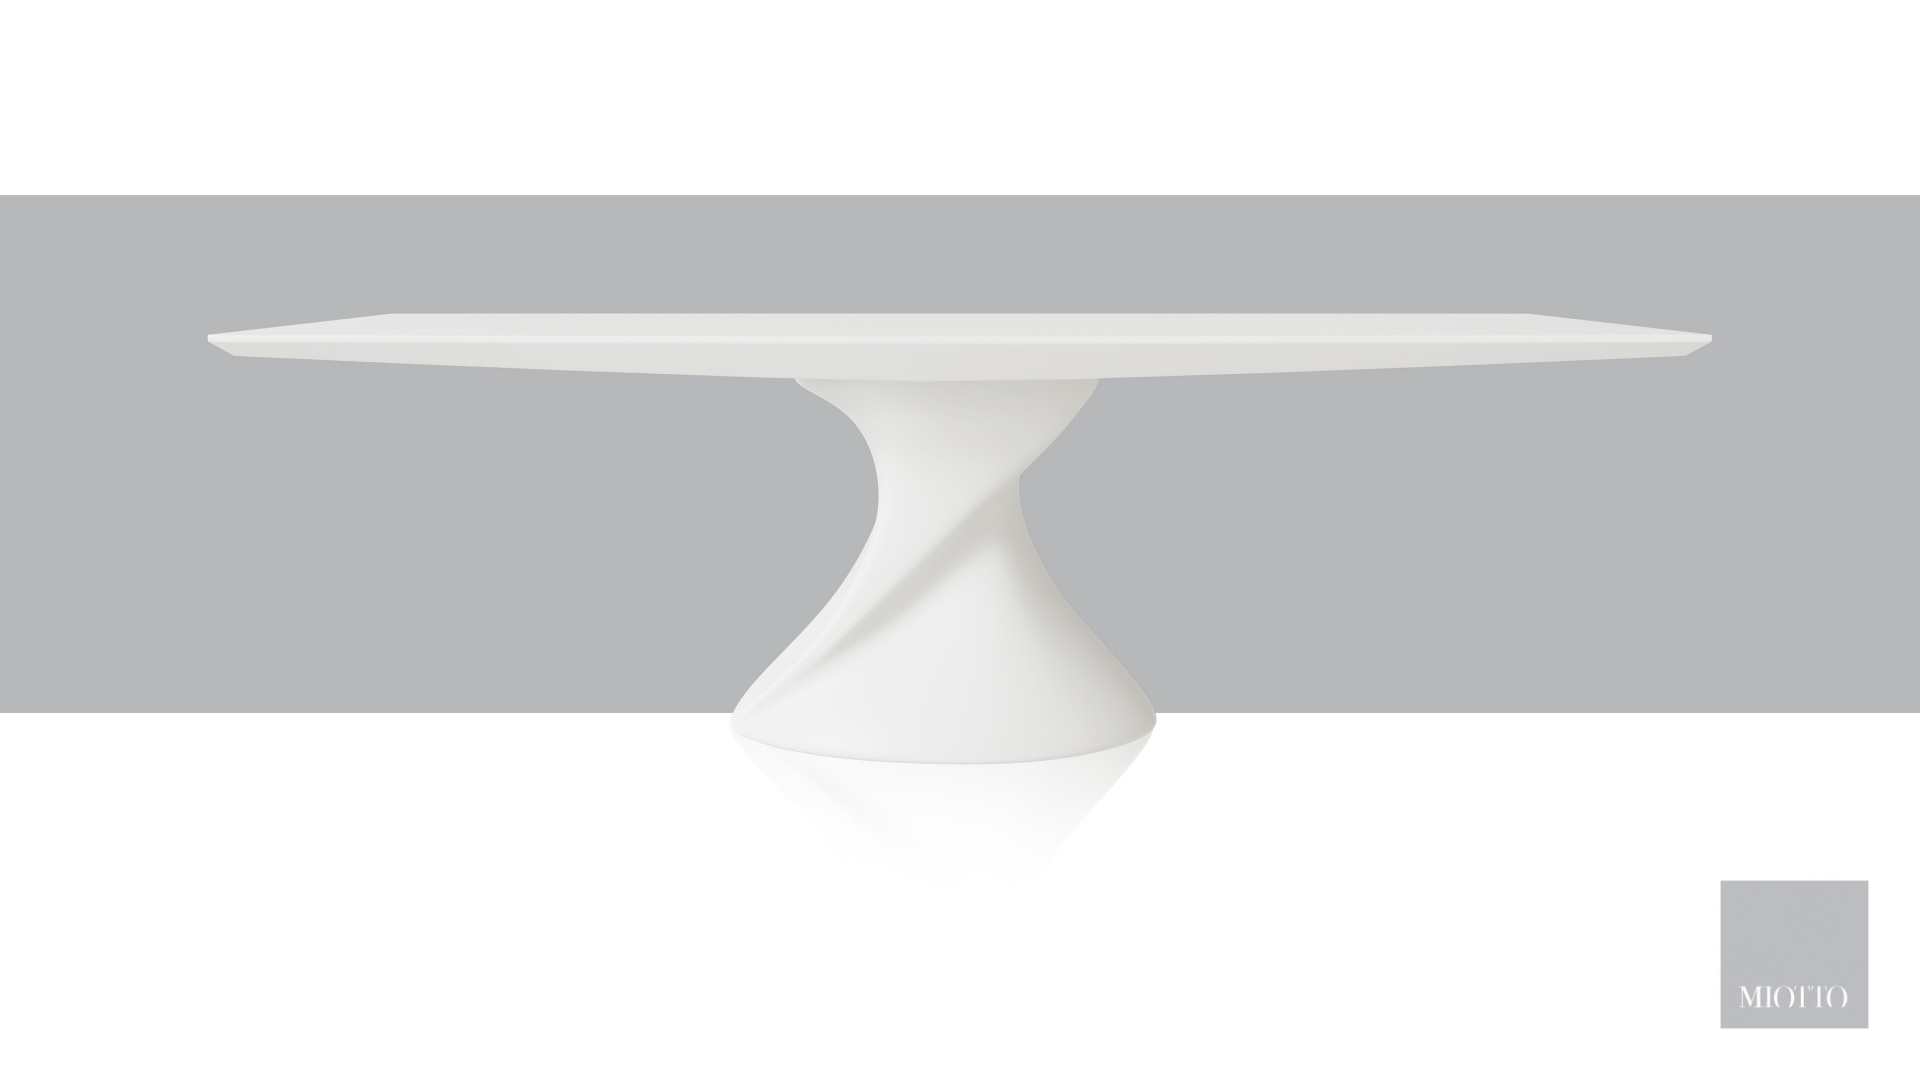 miotto_Bibiana dining table 240 front miotto furniture t